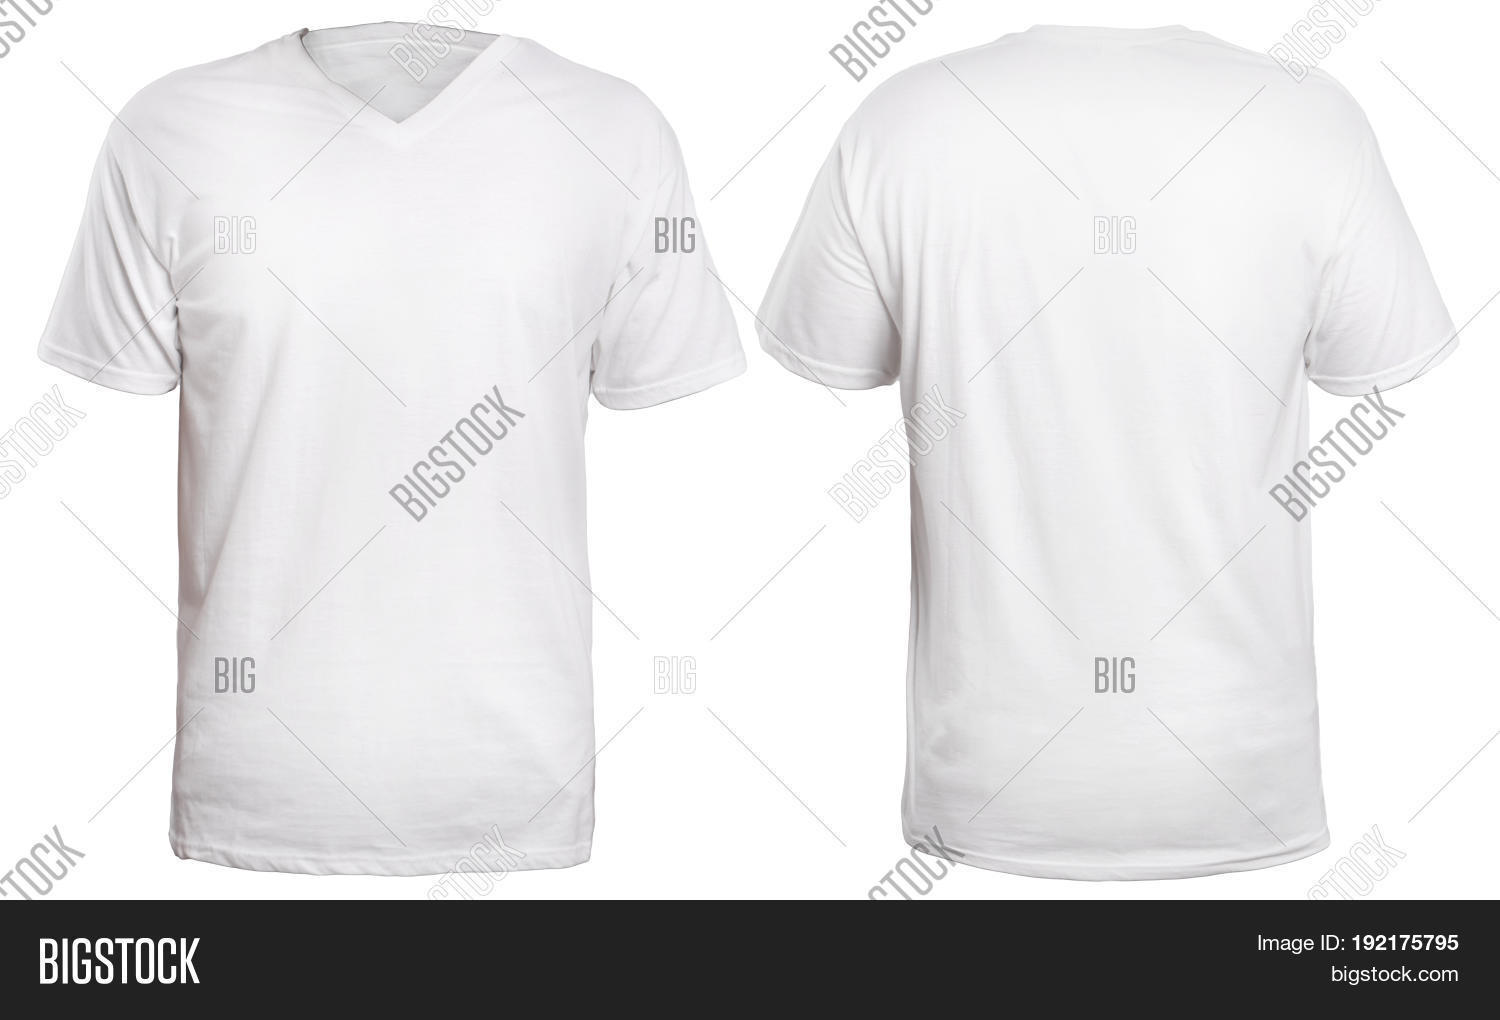 f058c1344ab4 Blank v-neck shirt mock up template front and back view isolated on white  plain